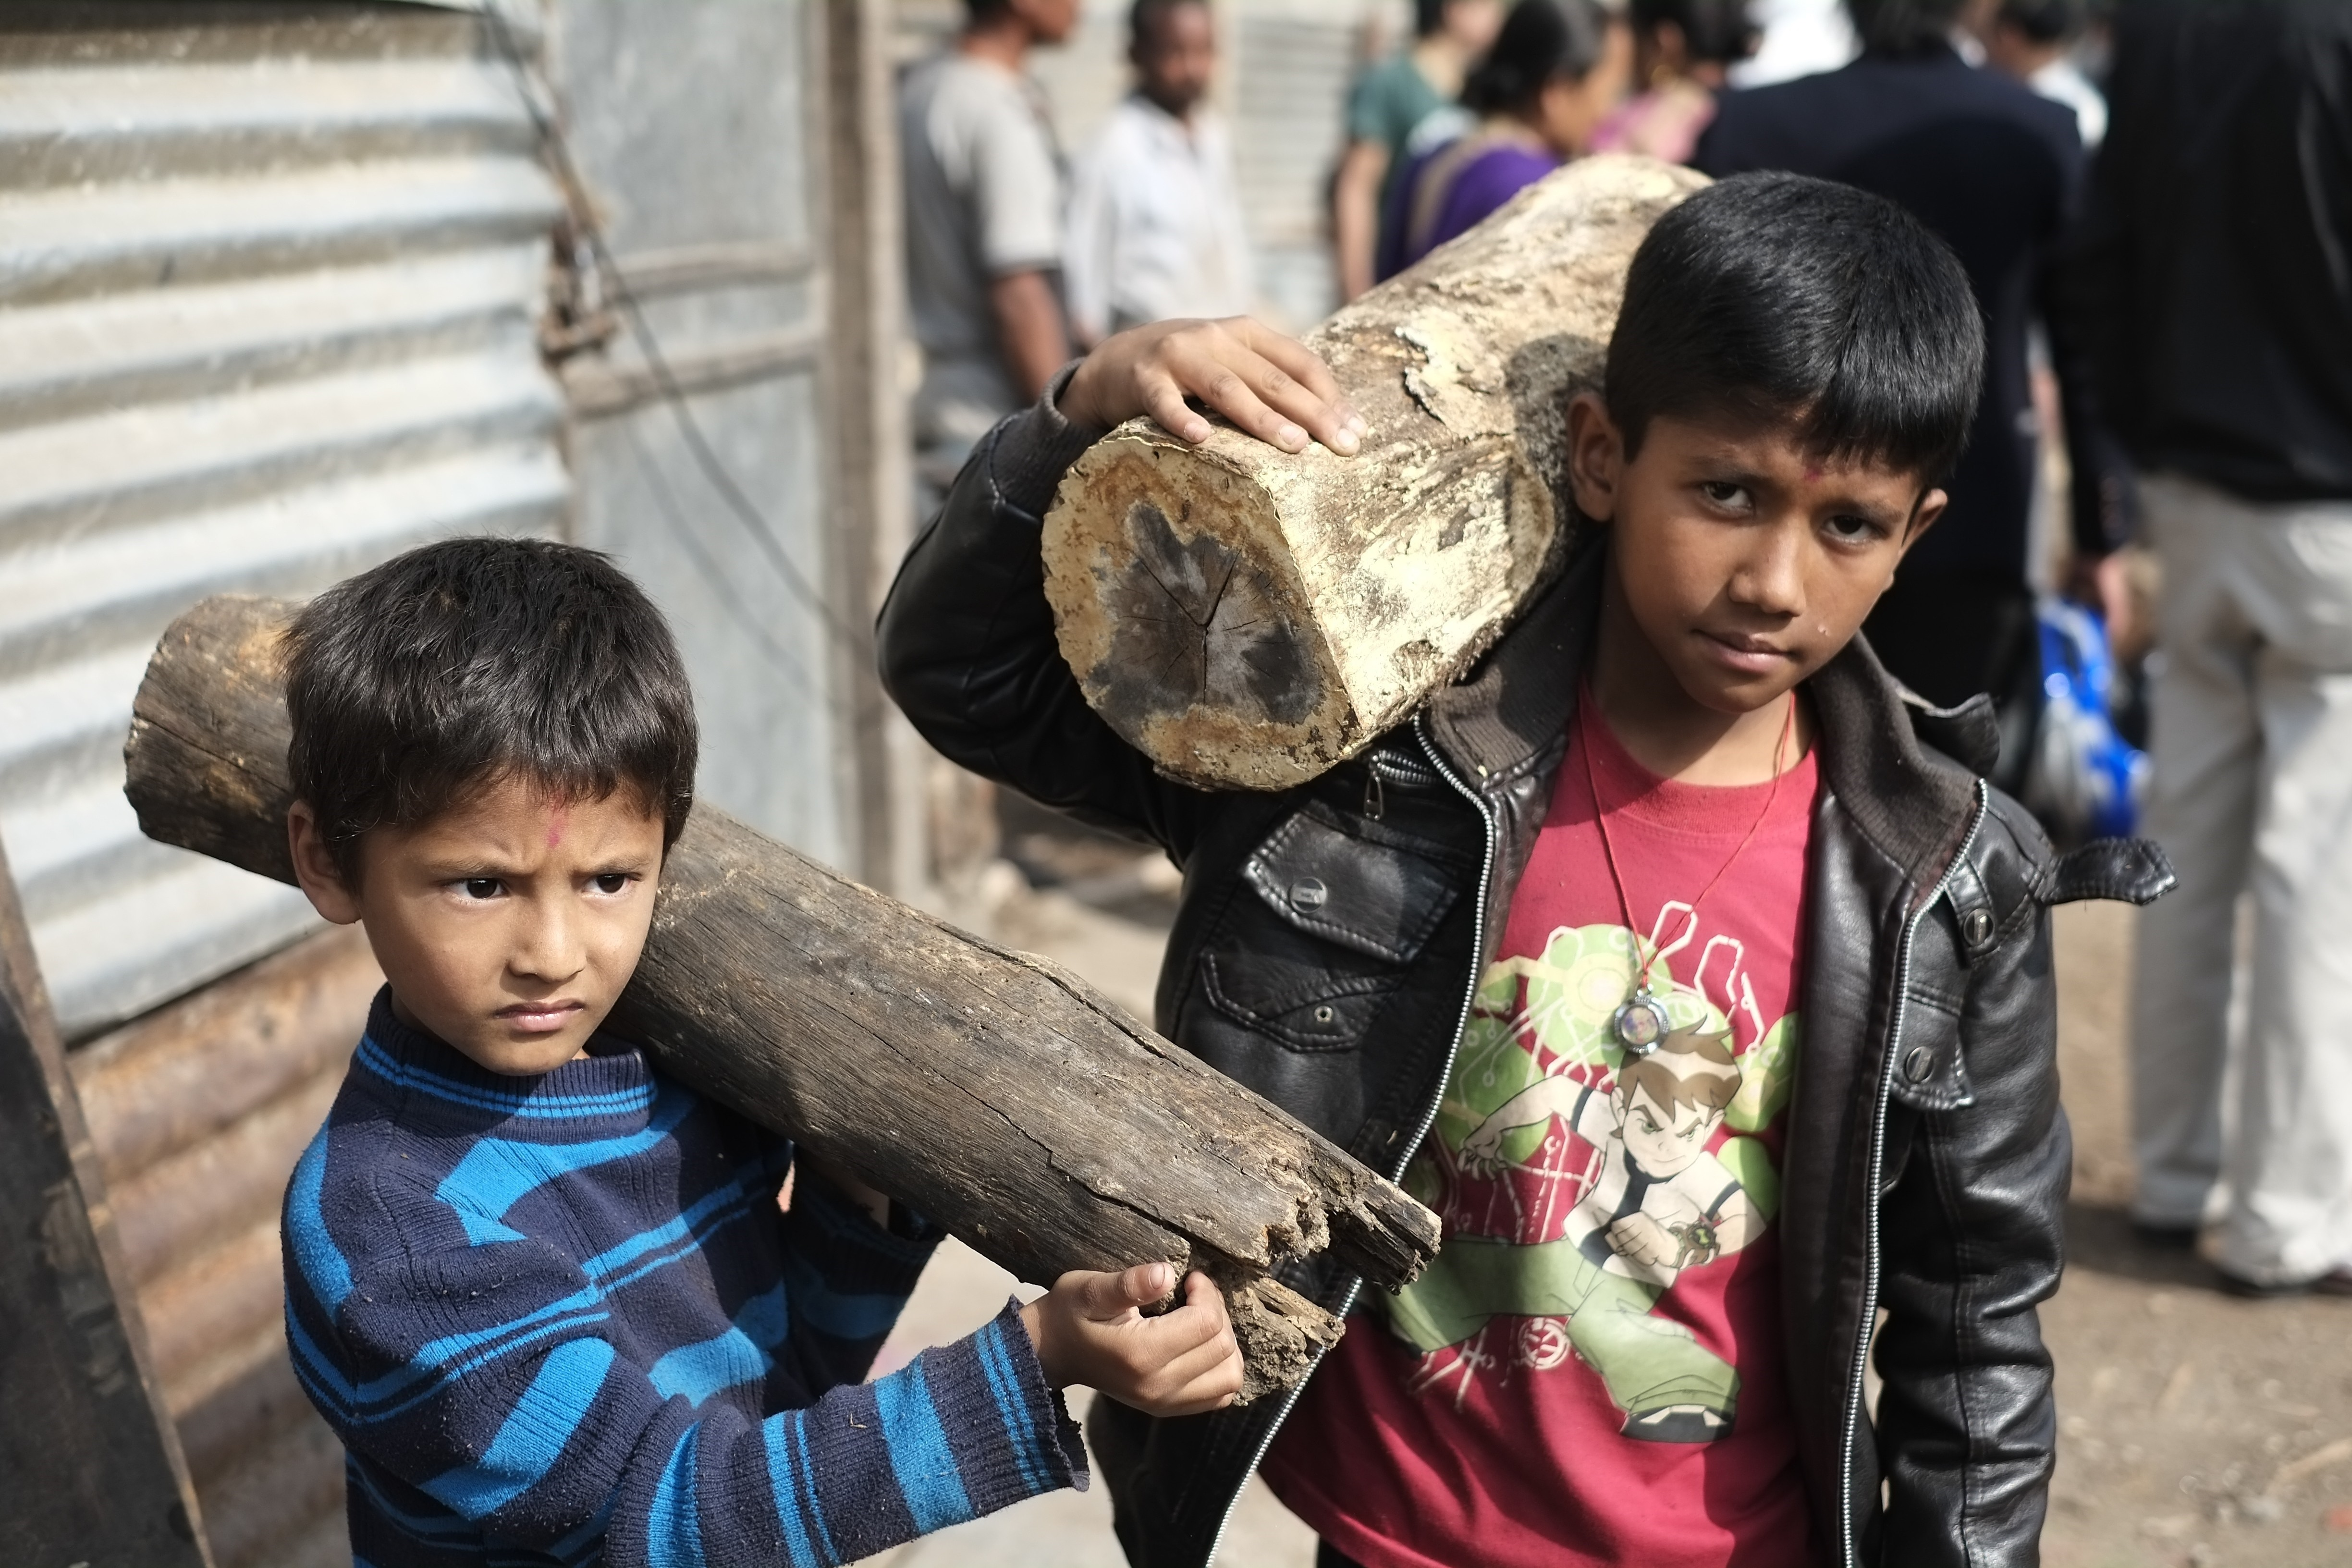 Nepalese boys carry firewood sold by the Nepal government in Kathmandu, Nepal on November 15, 2015. Nepal is facing fuel shortage due to a blockade by India as protests continue in the southern Terai region over the past three months.